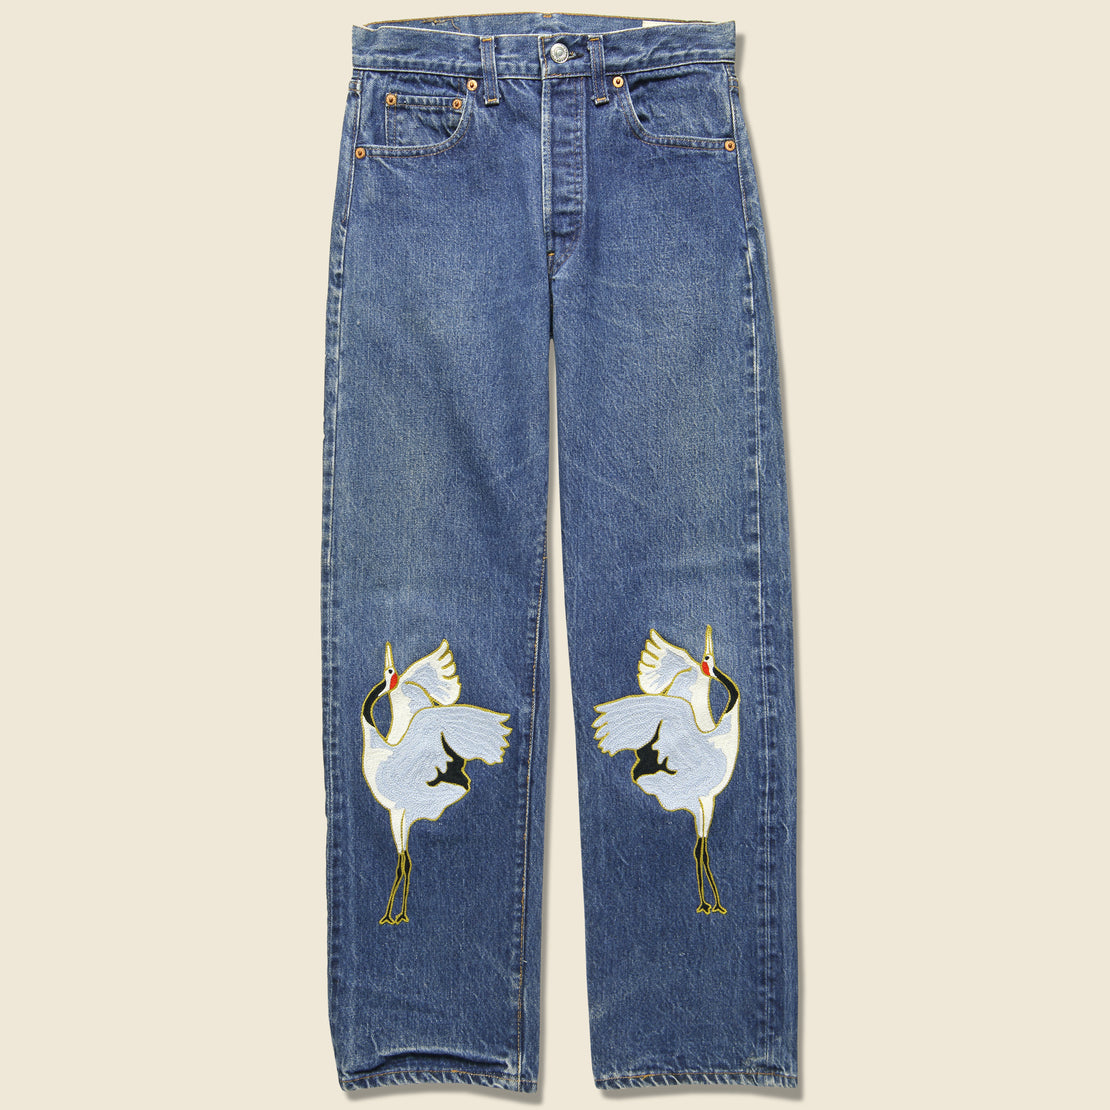 Fort Lonesome Cranes Levi's Selvedge 501 - Blue